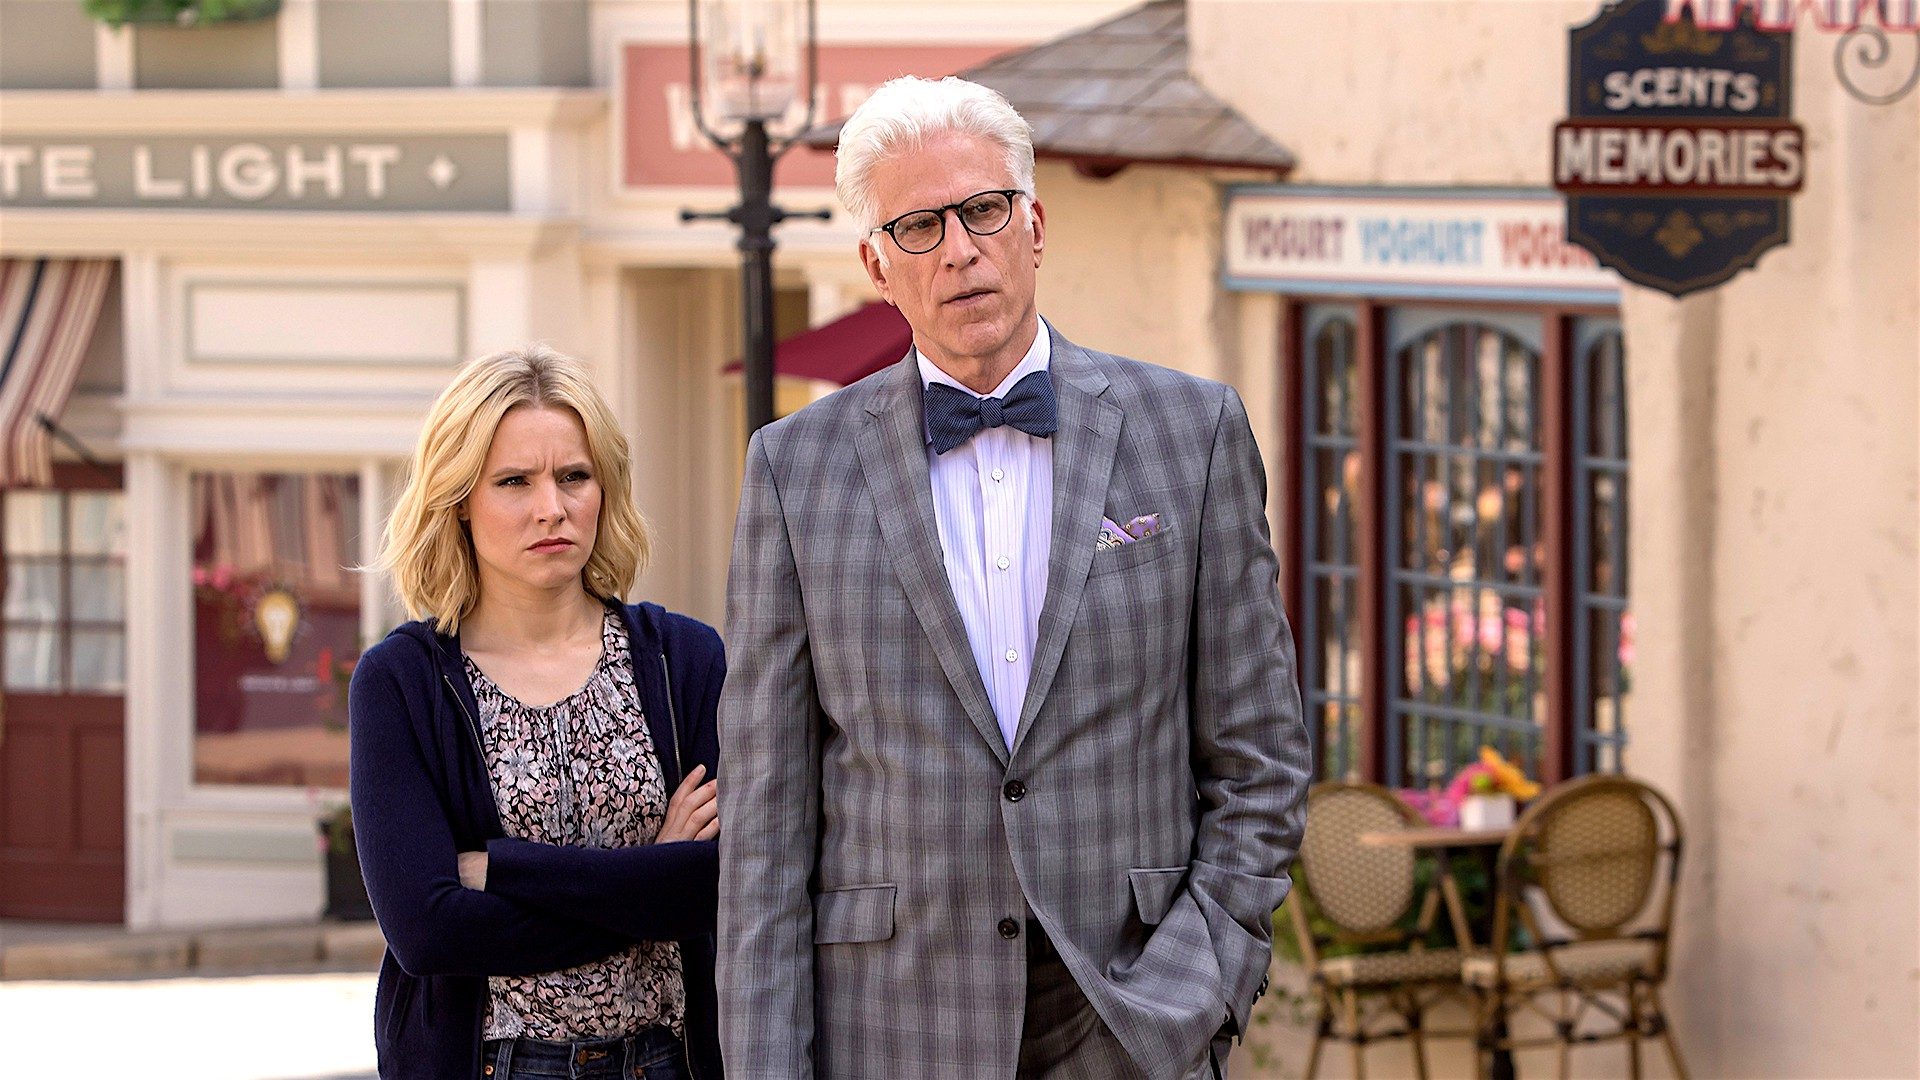 c584b6133c9 How 'The Good Place' Utilized The Strengths of Peak TV To Become One of The  Best Shows of The Season